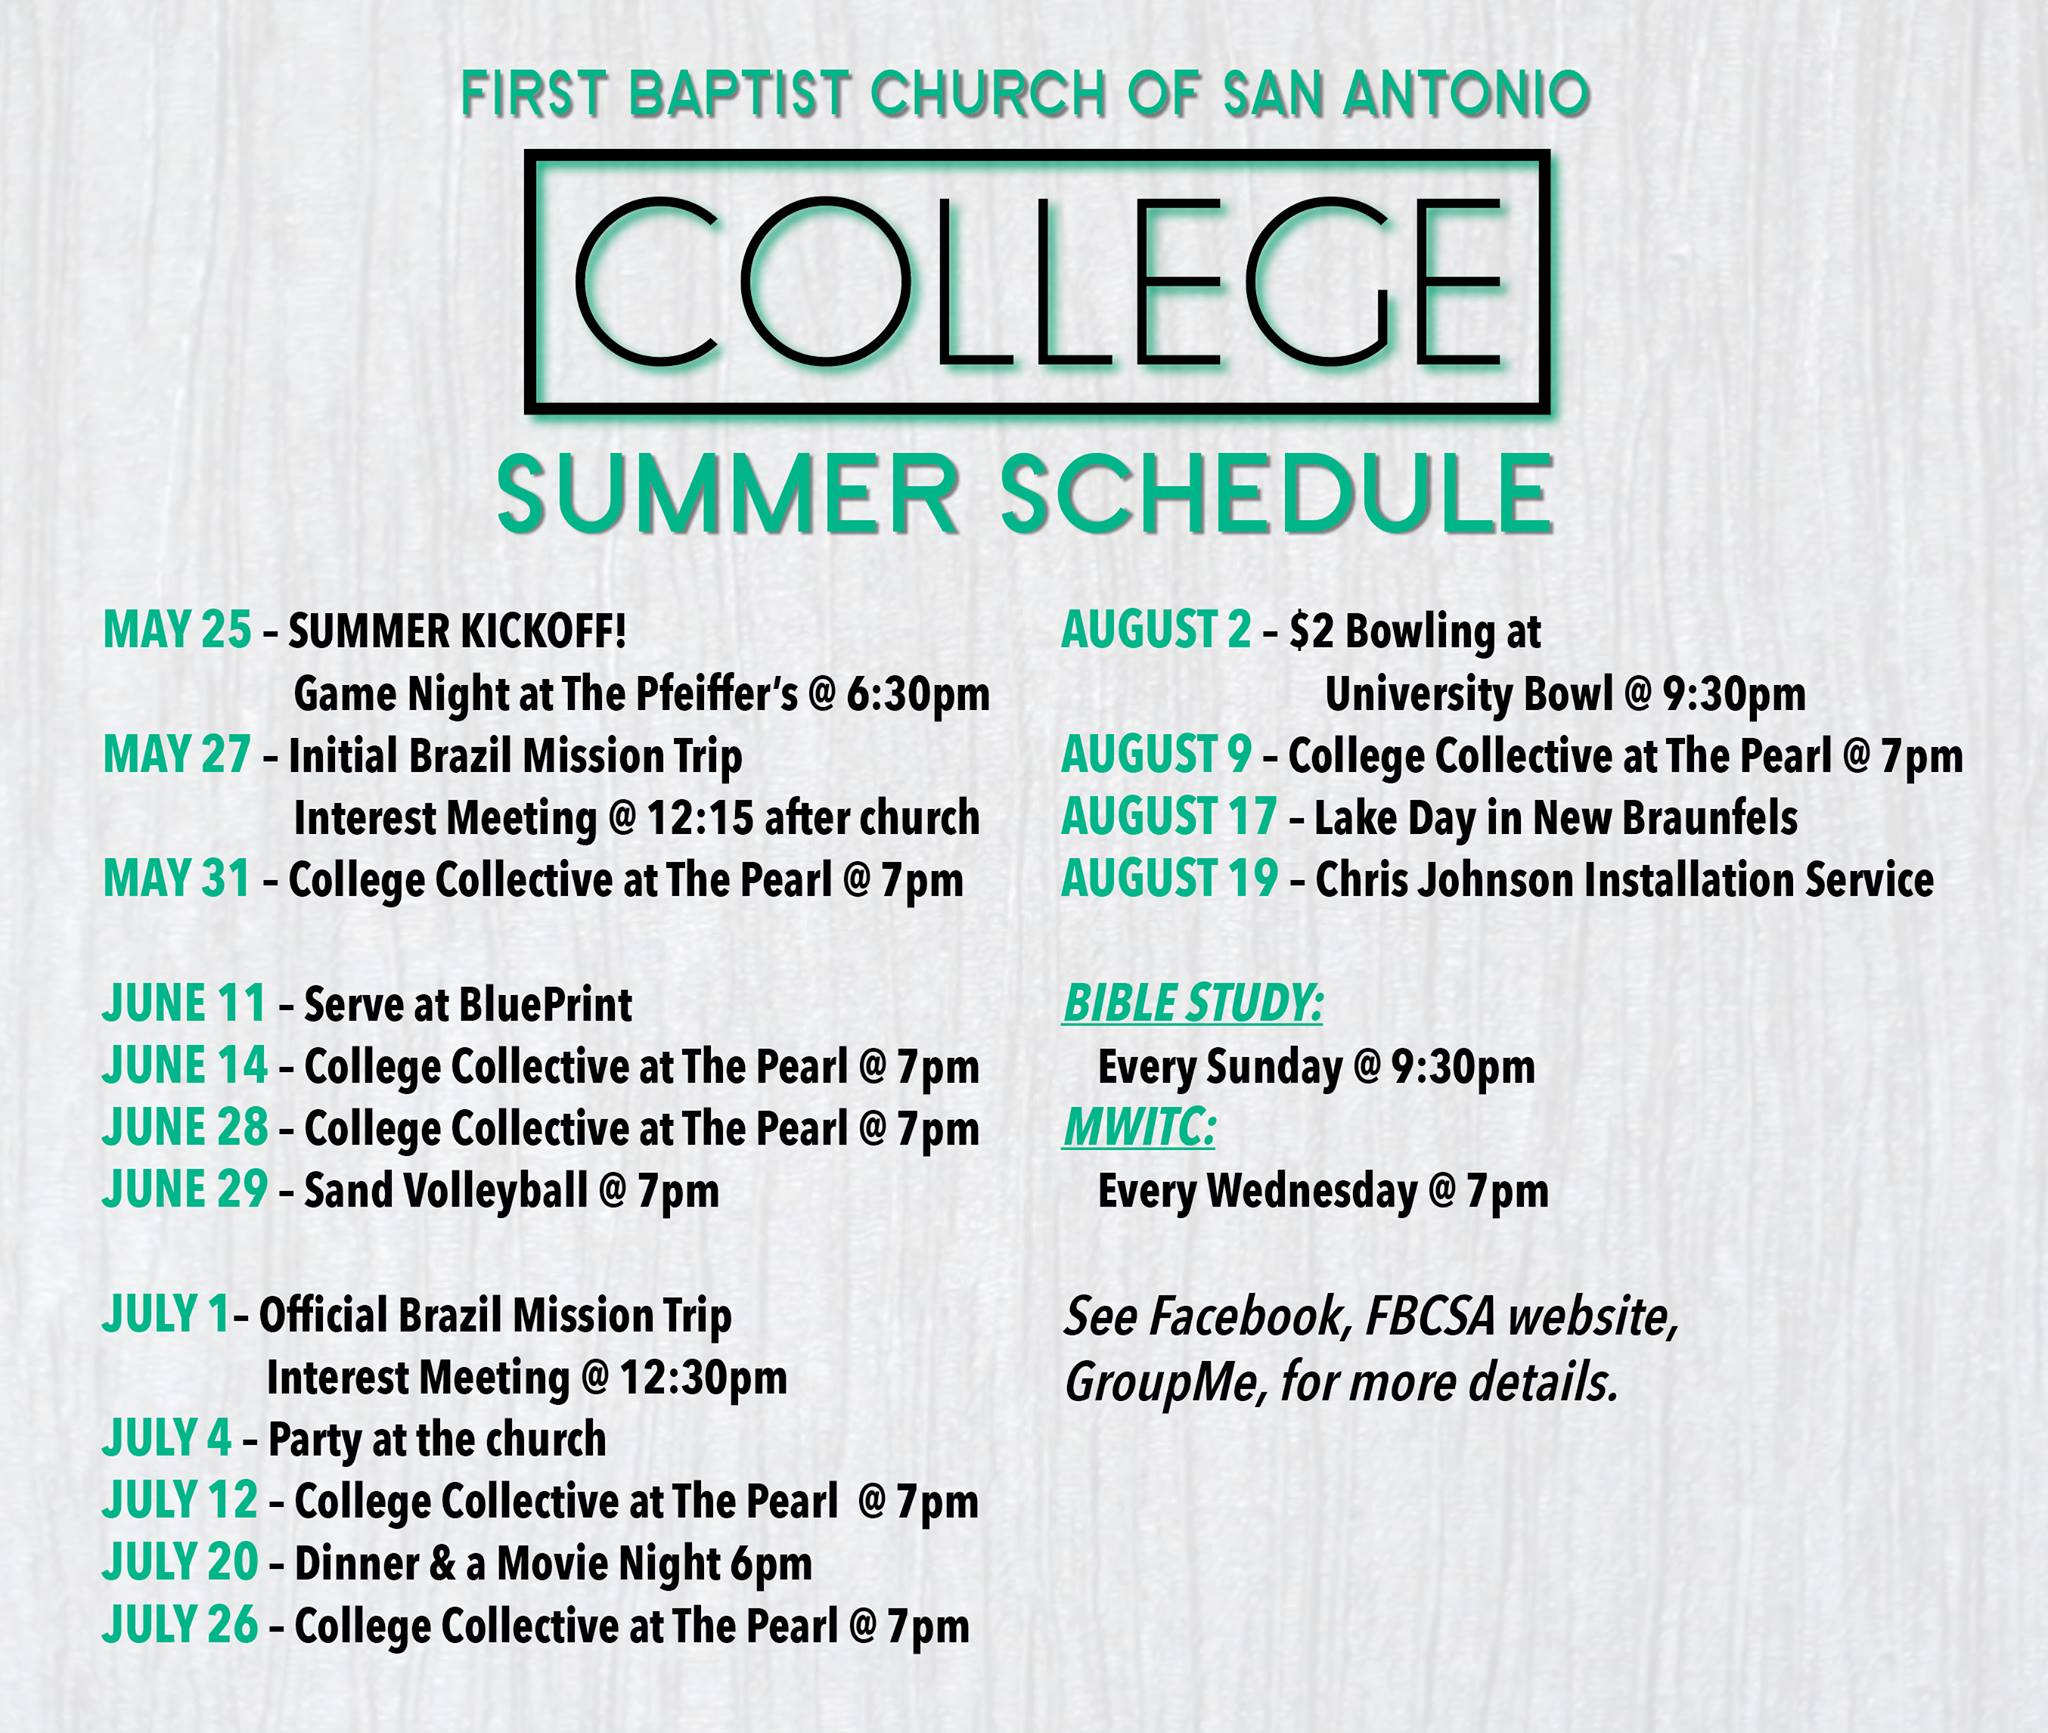 College ministry first baptist church san antonio the college ministry of fbcsa is building a family of friendship and faith so that together we can worship god follows jesus and represent gods kingdom malvernweather Images